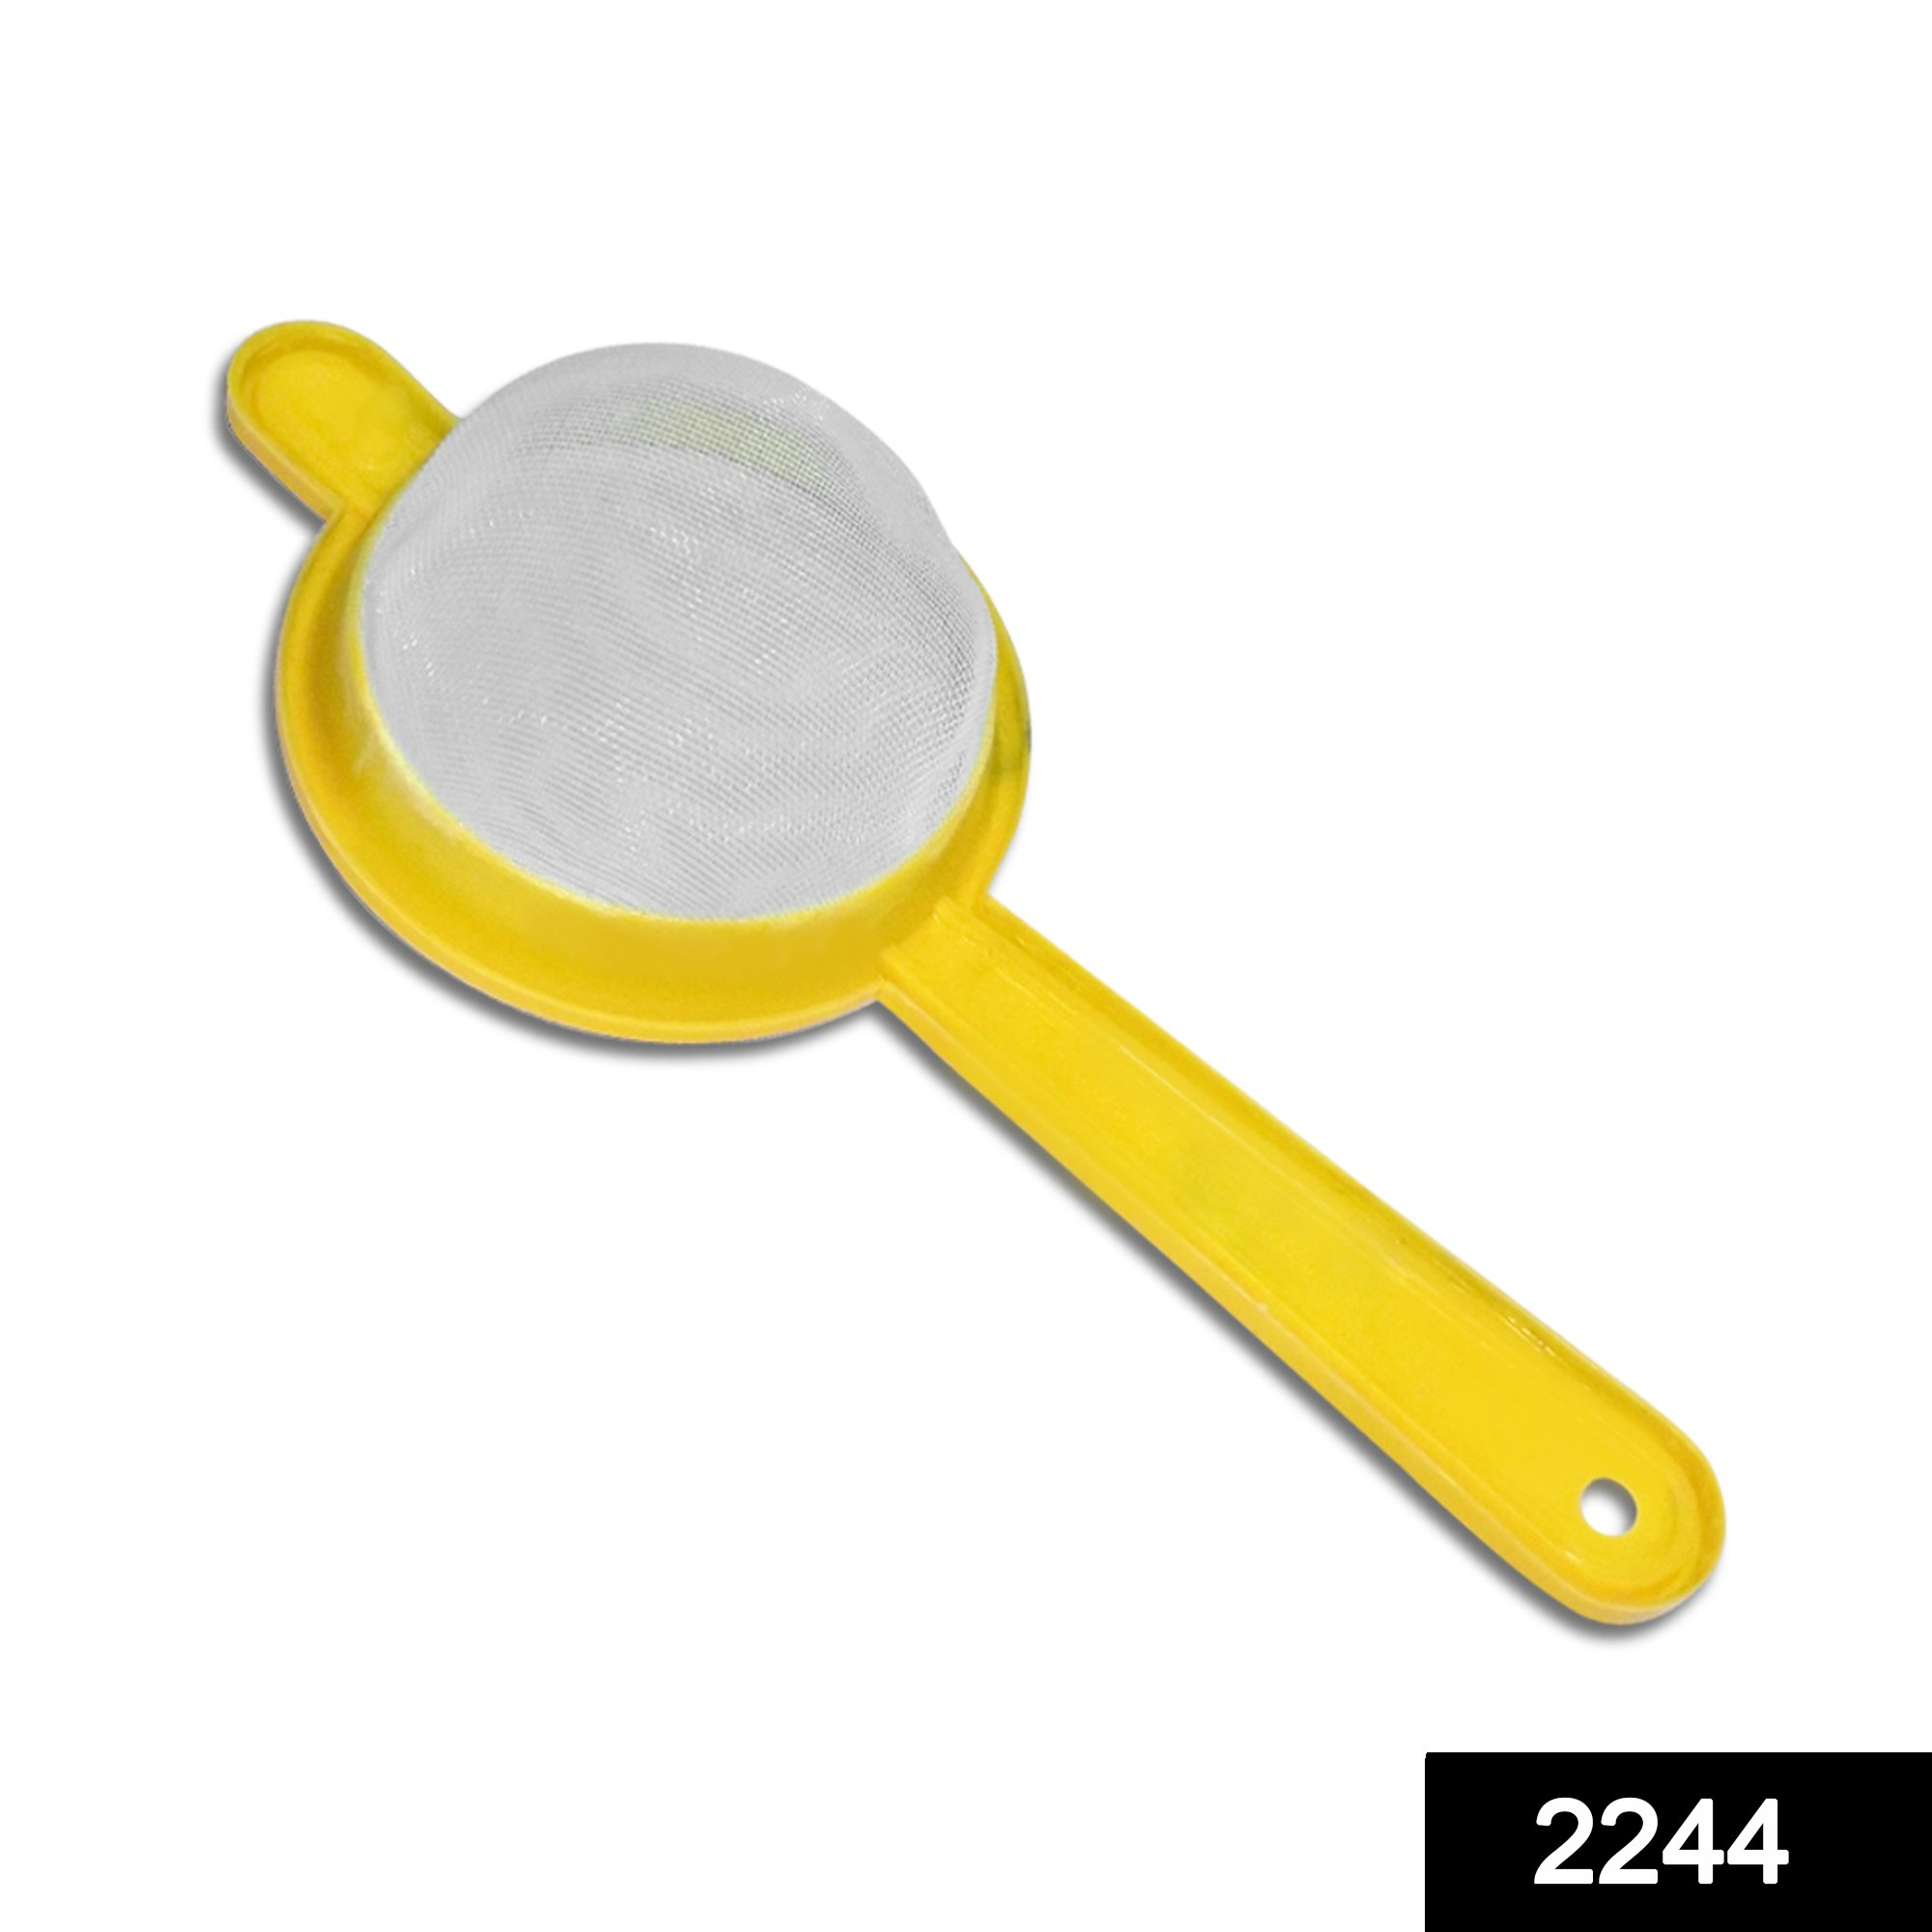 2244 Tea and Coffee Strainers (Multicolour) -